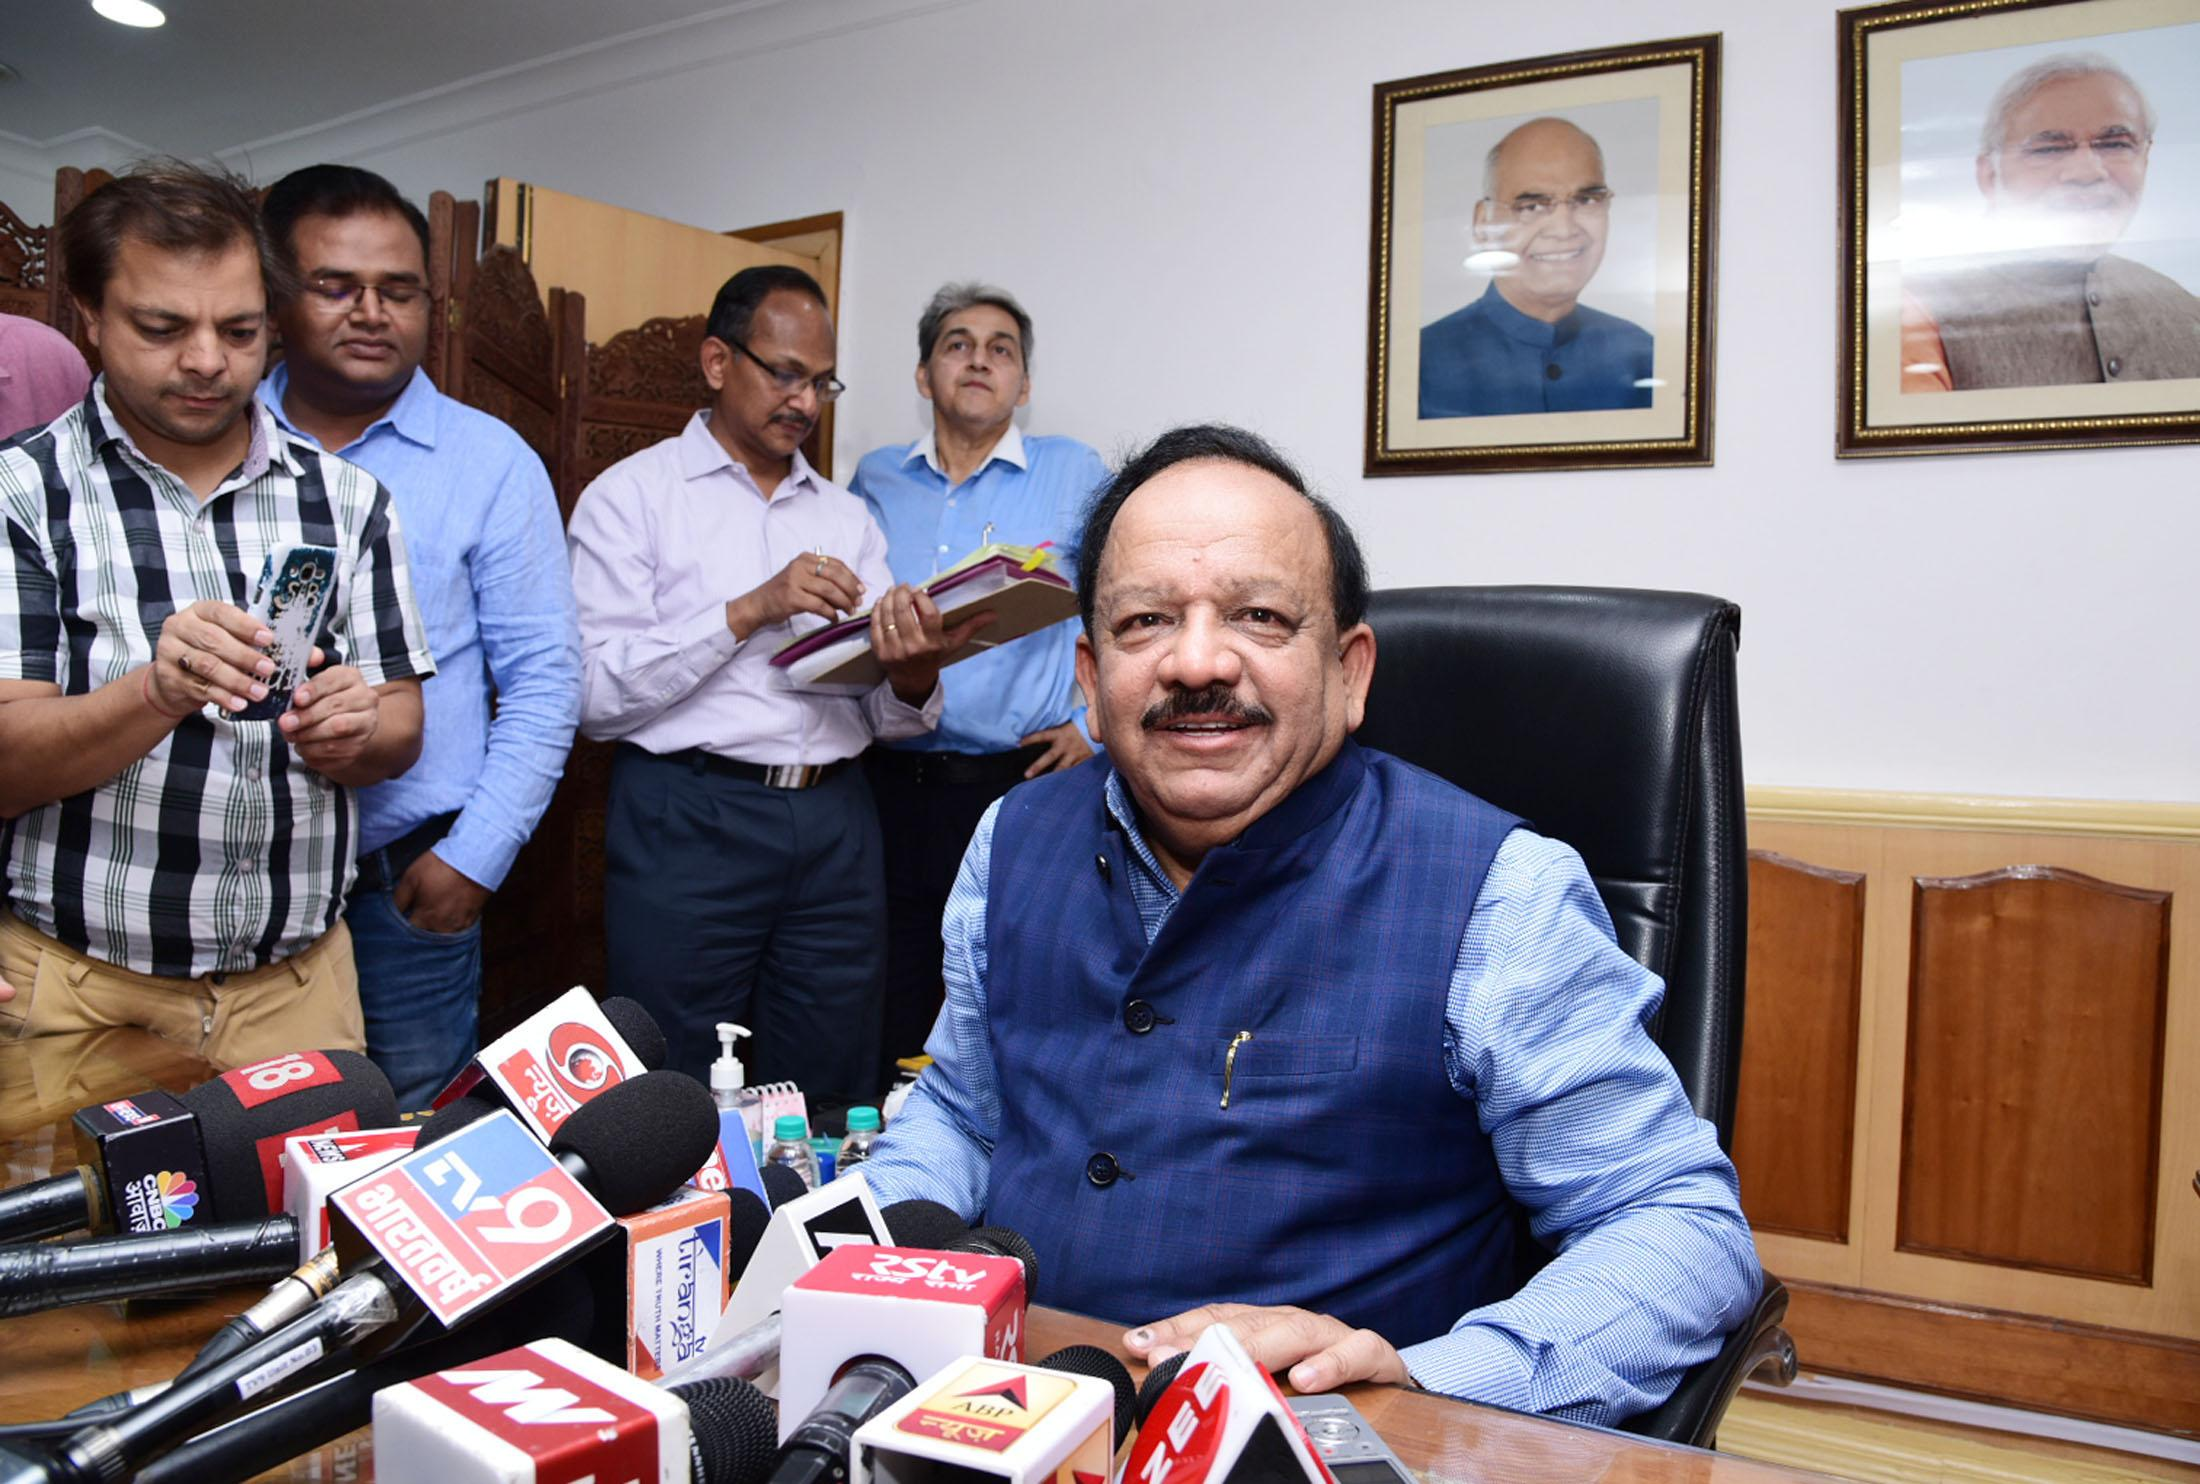 DR. HARSH VARDHAN CONDEMNS THE REPORTED INCIDENCES OF VIOLENCE AGAINST DOCTORS